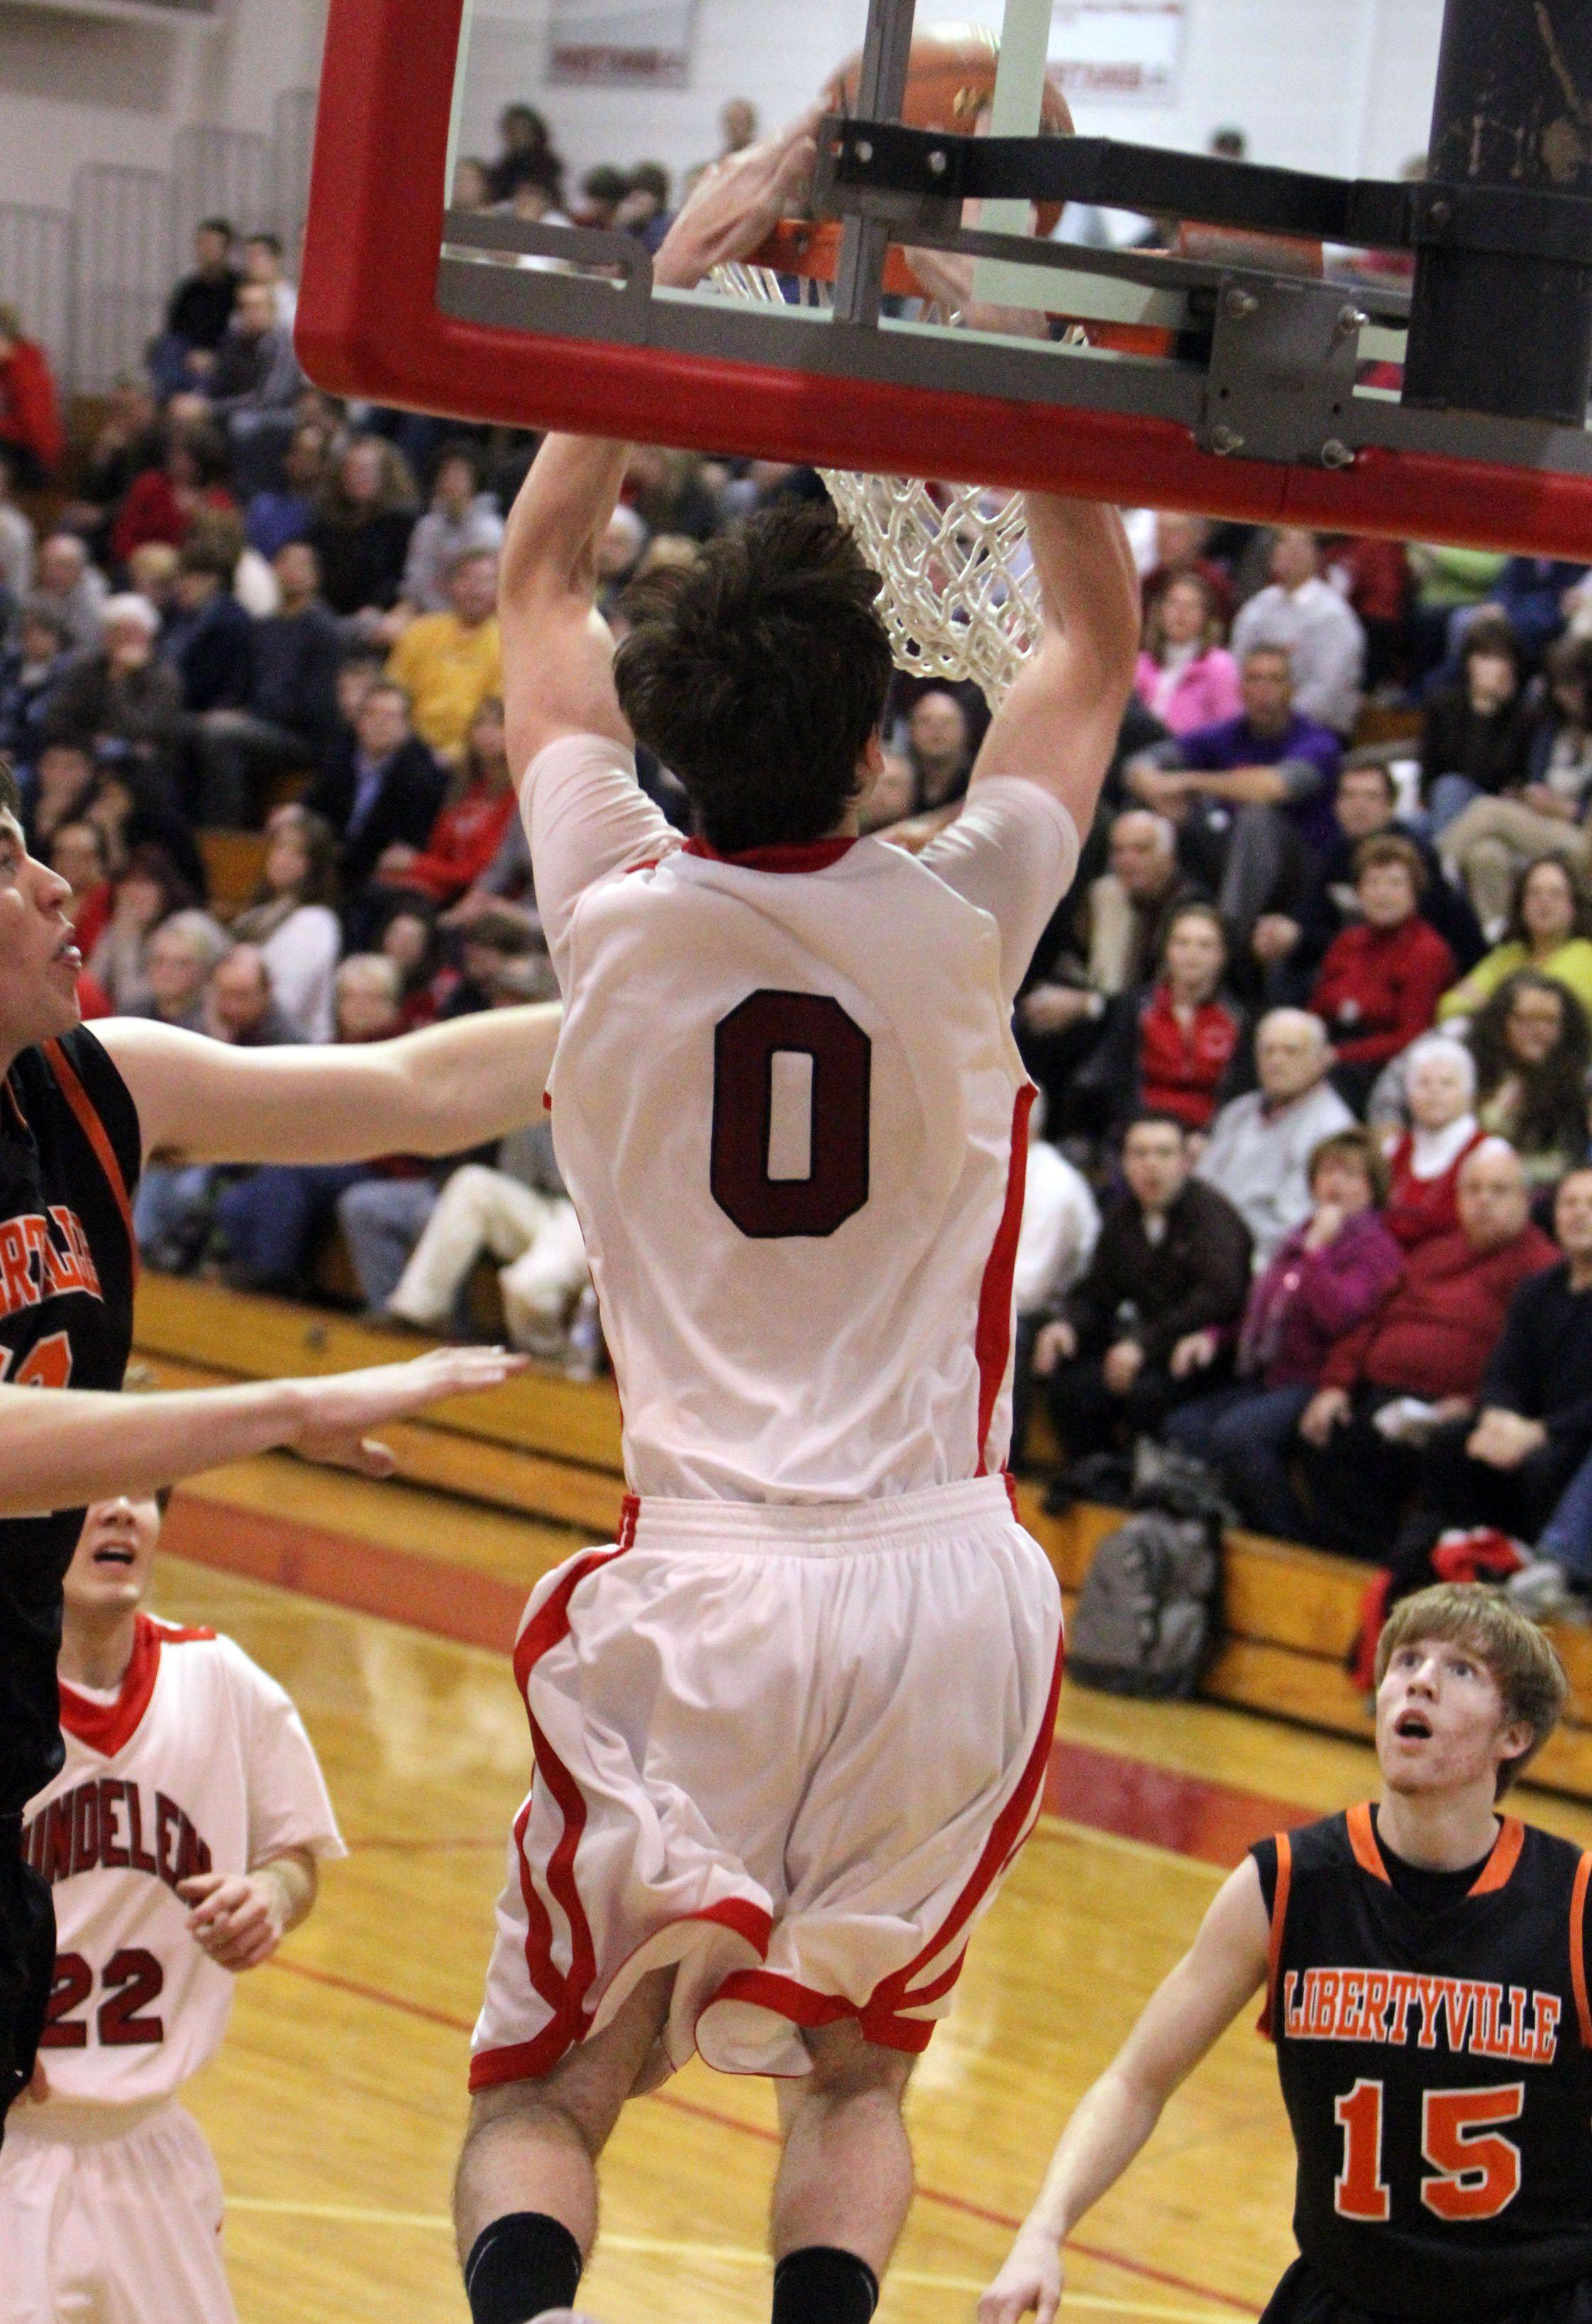 Mundelein's Ryan Sawvell dunks the ball a second time in the third quarter.